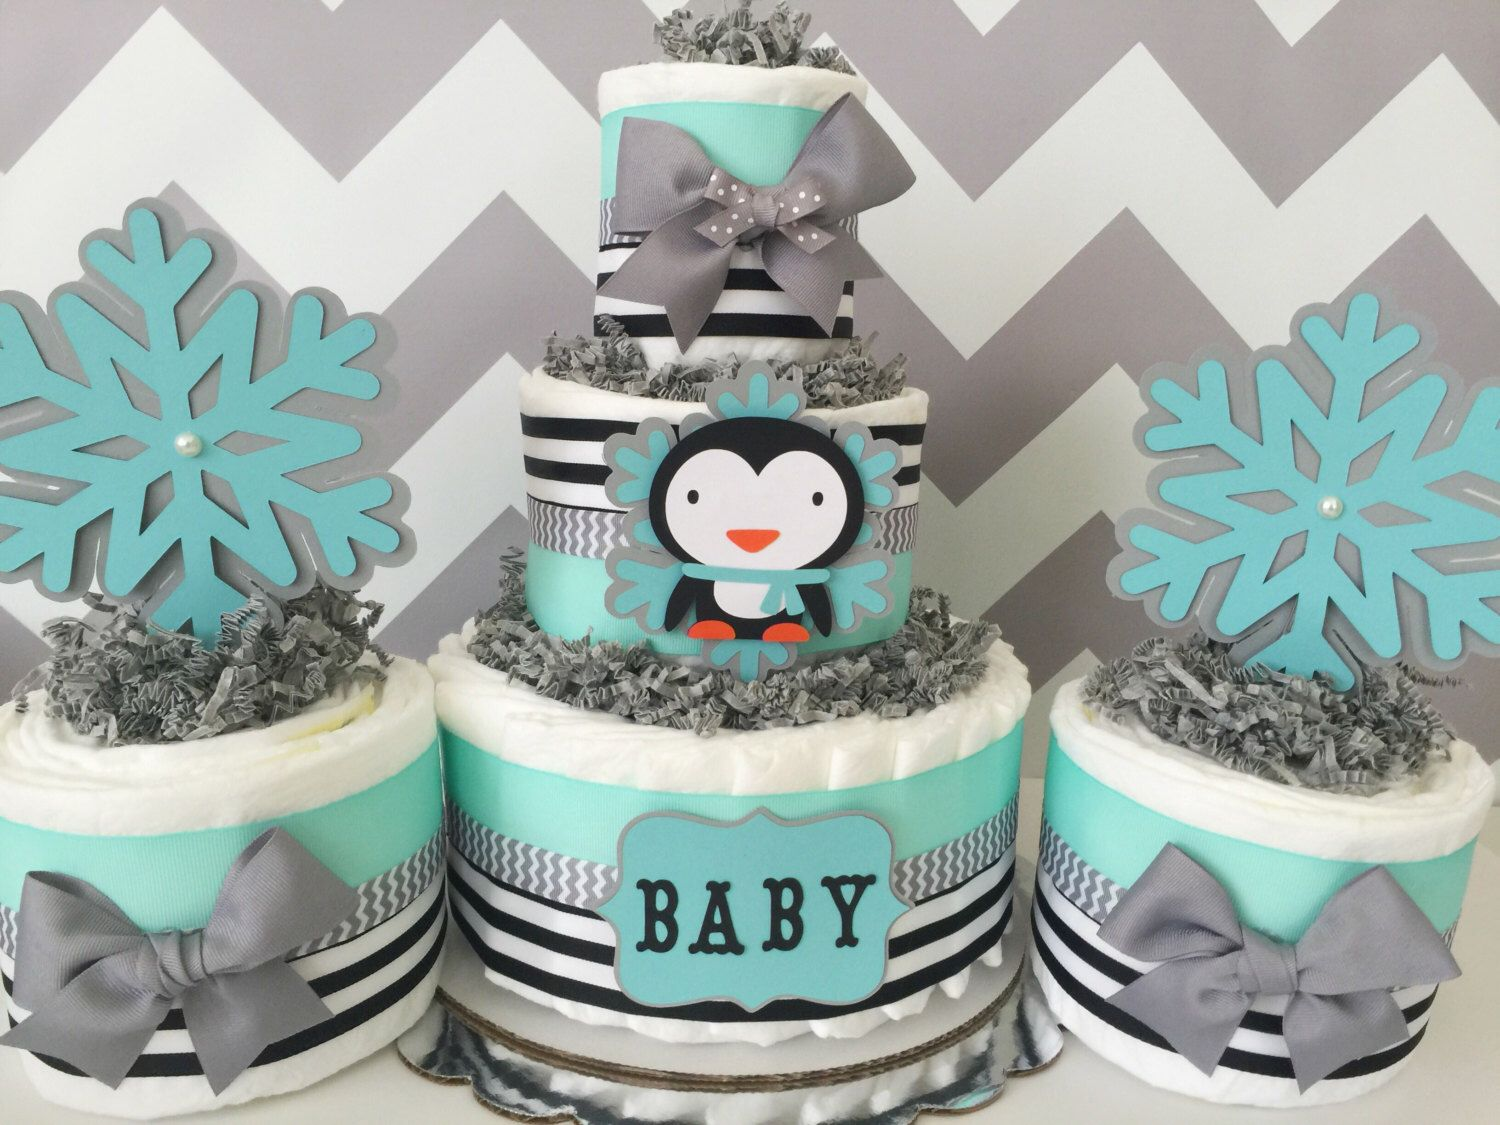 Penguin Winter Diaper Cake In Mint, Gray And Black, Penguin Baby Shower  Centerpieces By AllDiaperCakes On Etsy ...